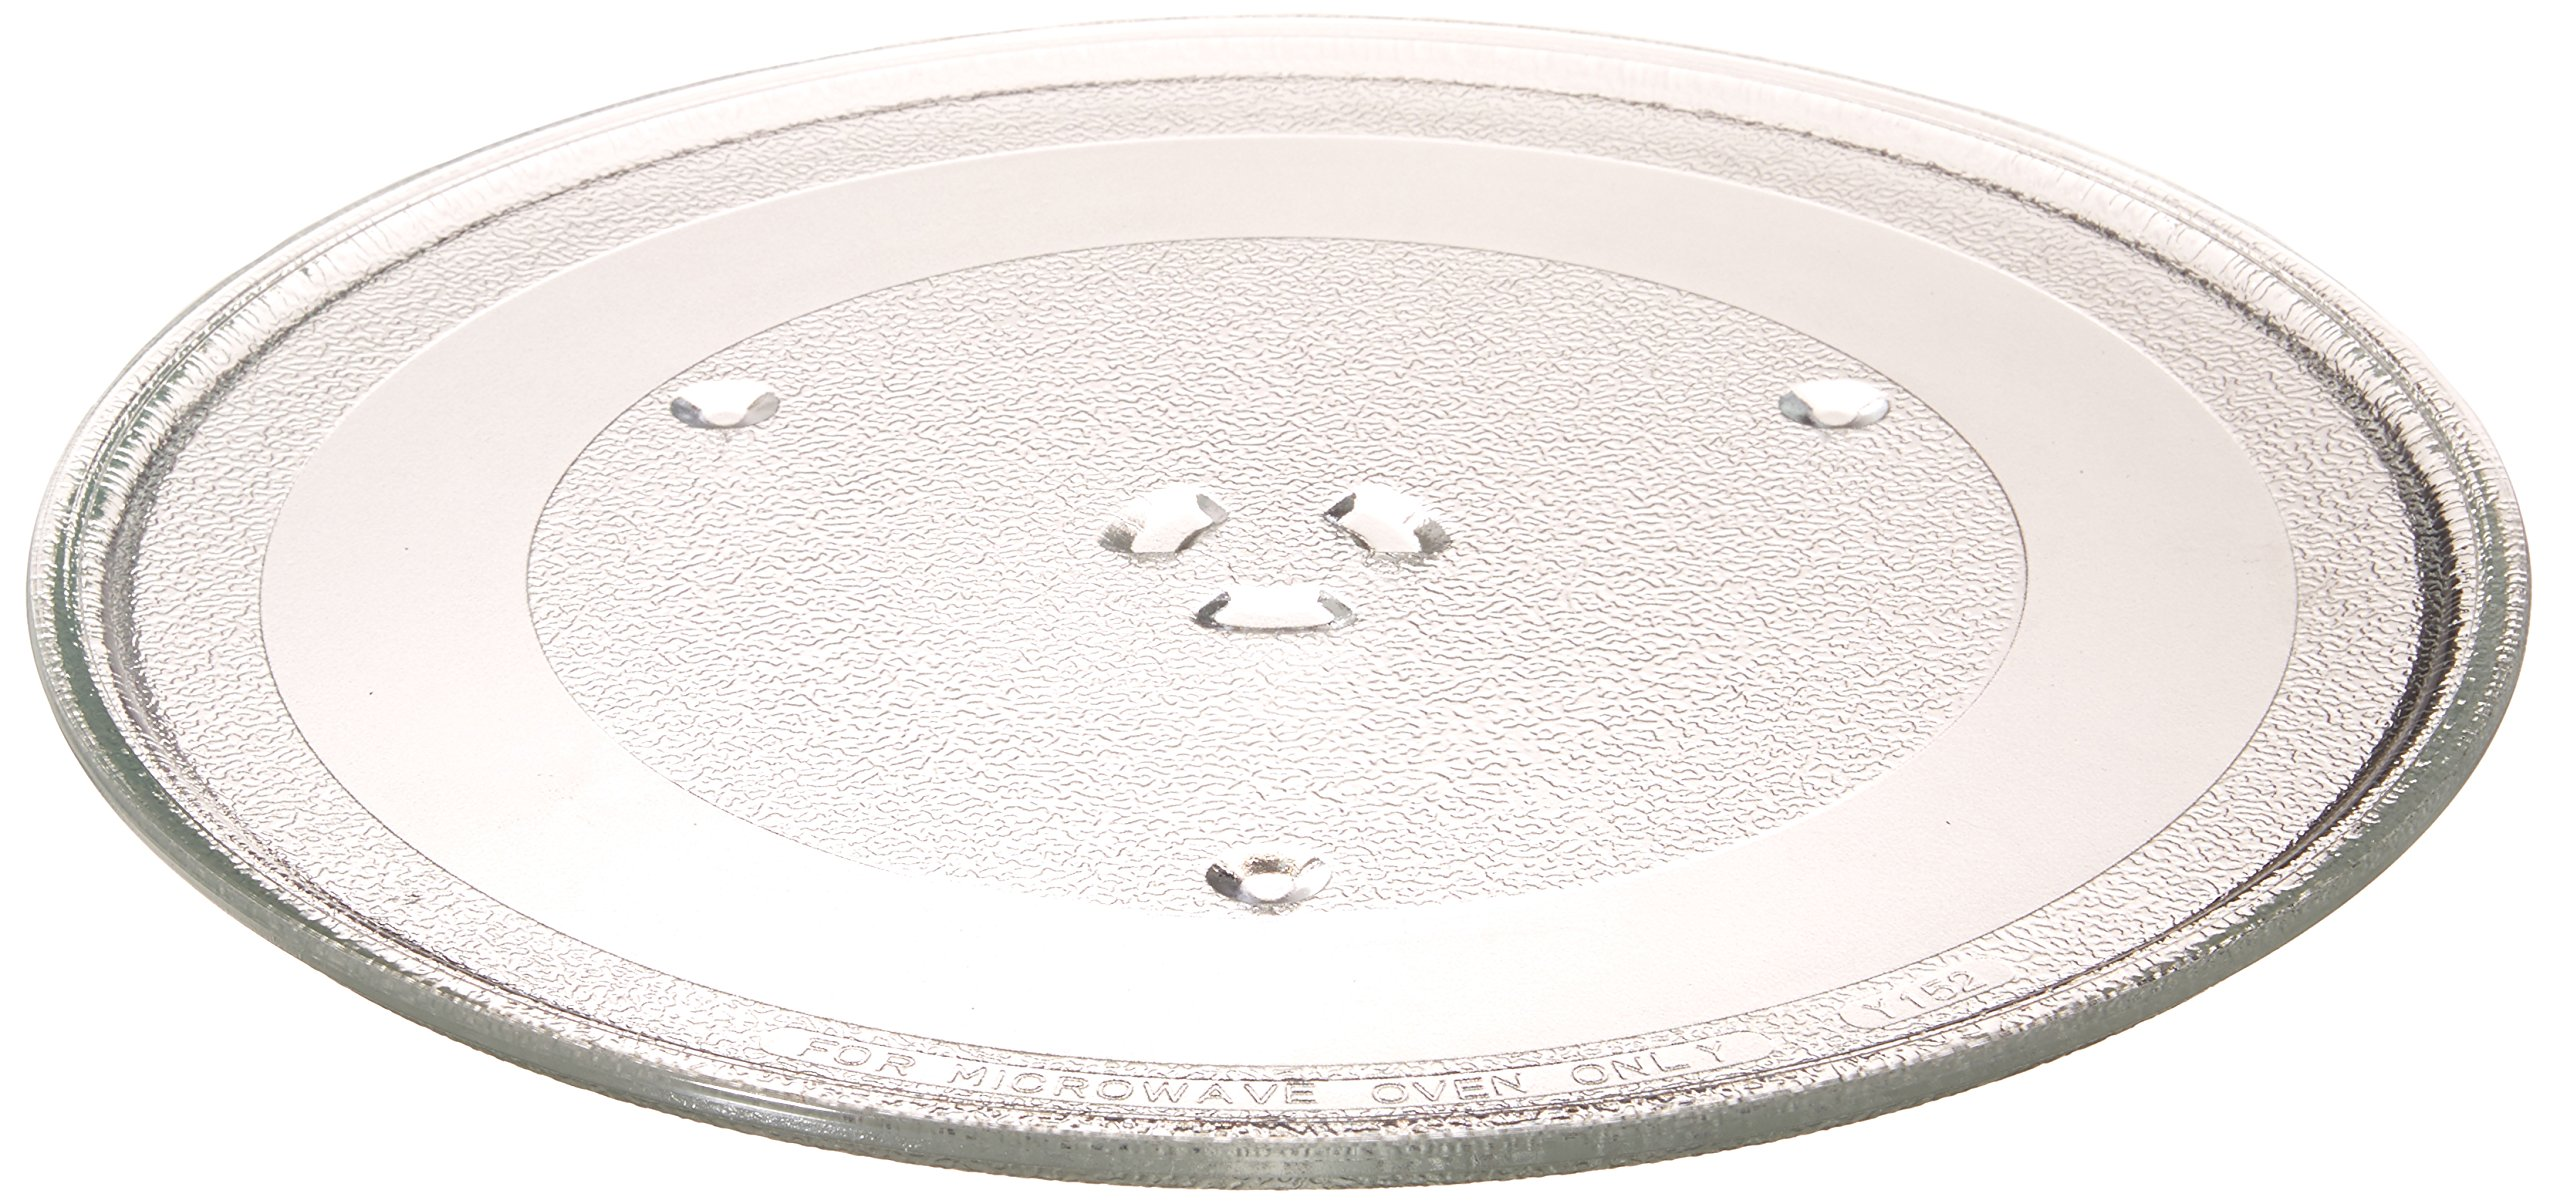 General Electric Microwave Glass Turntable Plate / Tray 13 1/2 '' WB39X10032 by General Electric